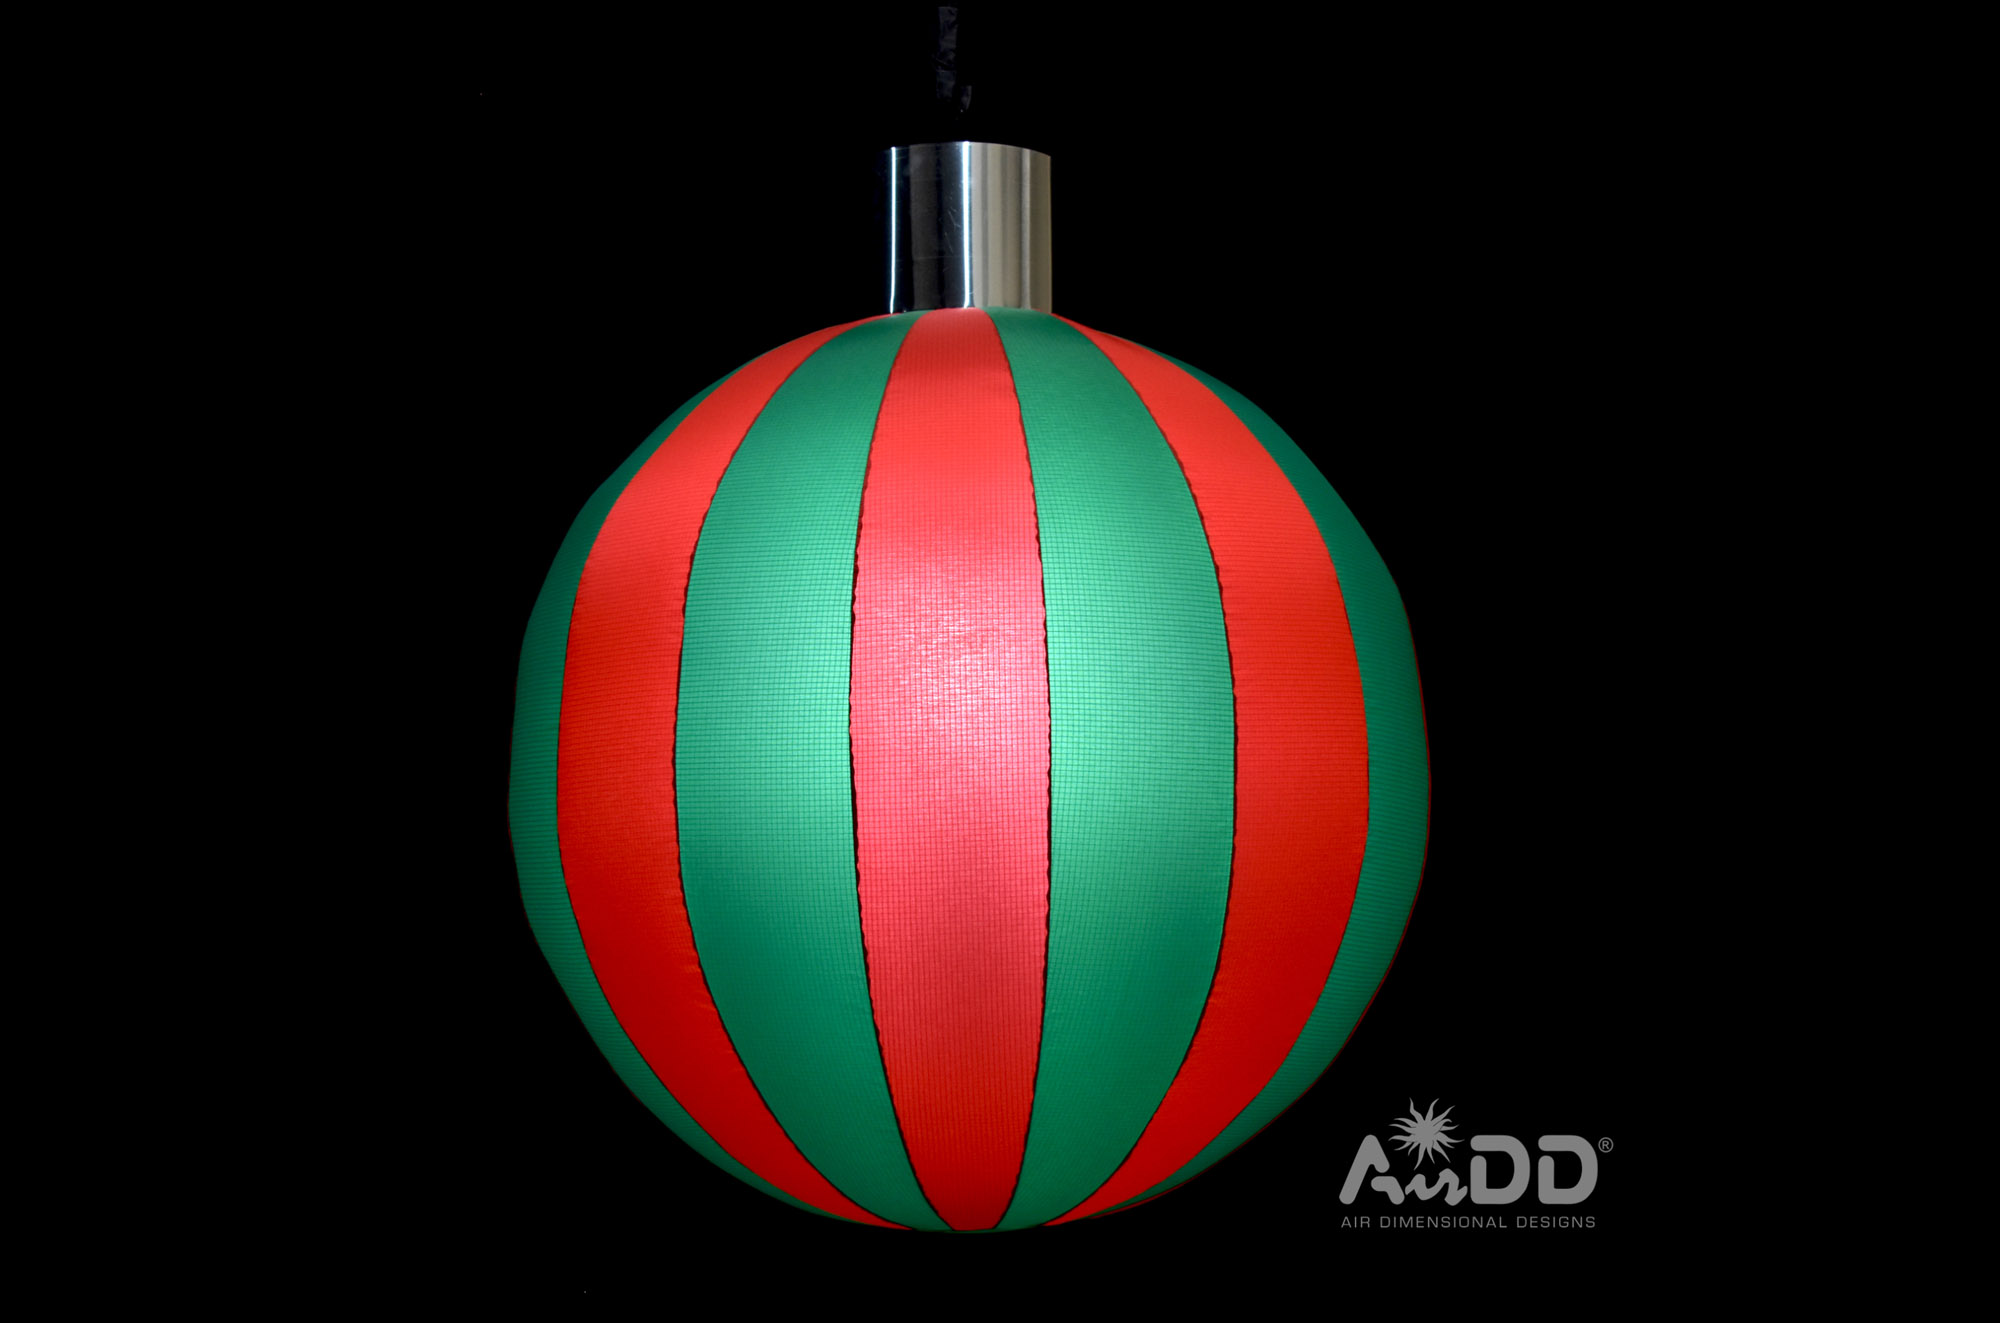 red-green-ornaments-1-uai-2880x1905.jpg